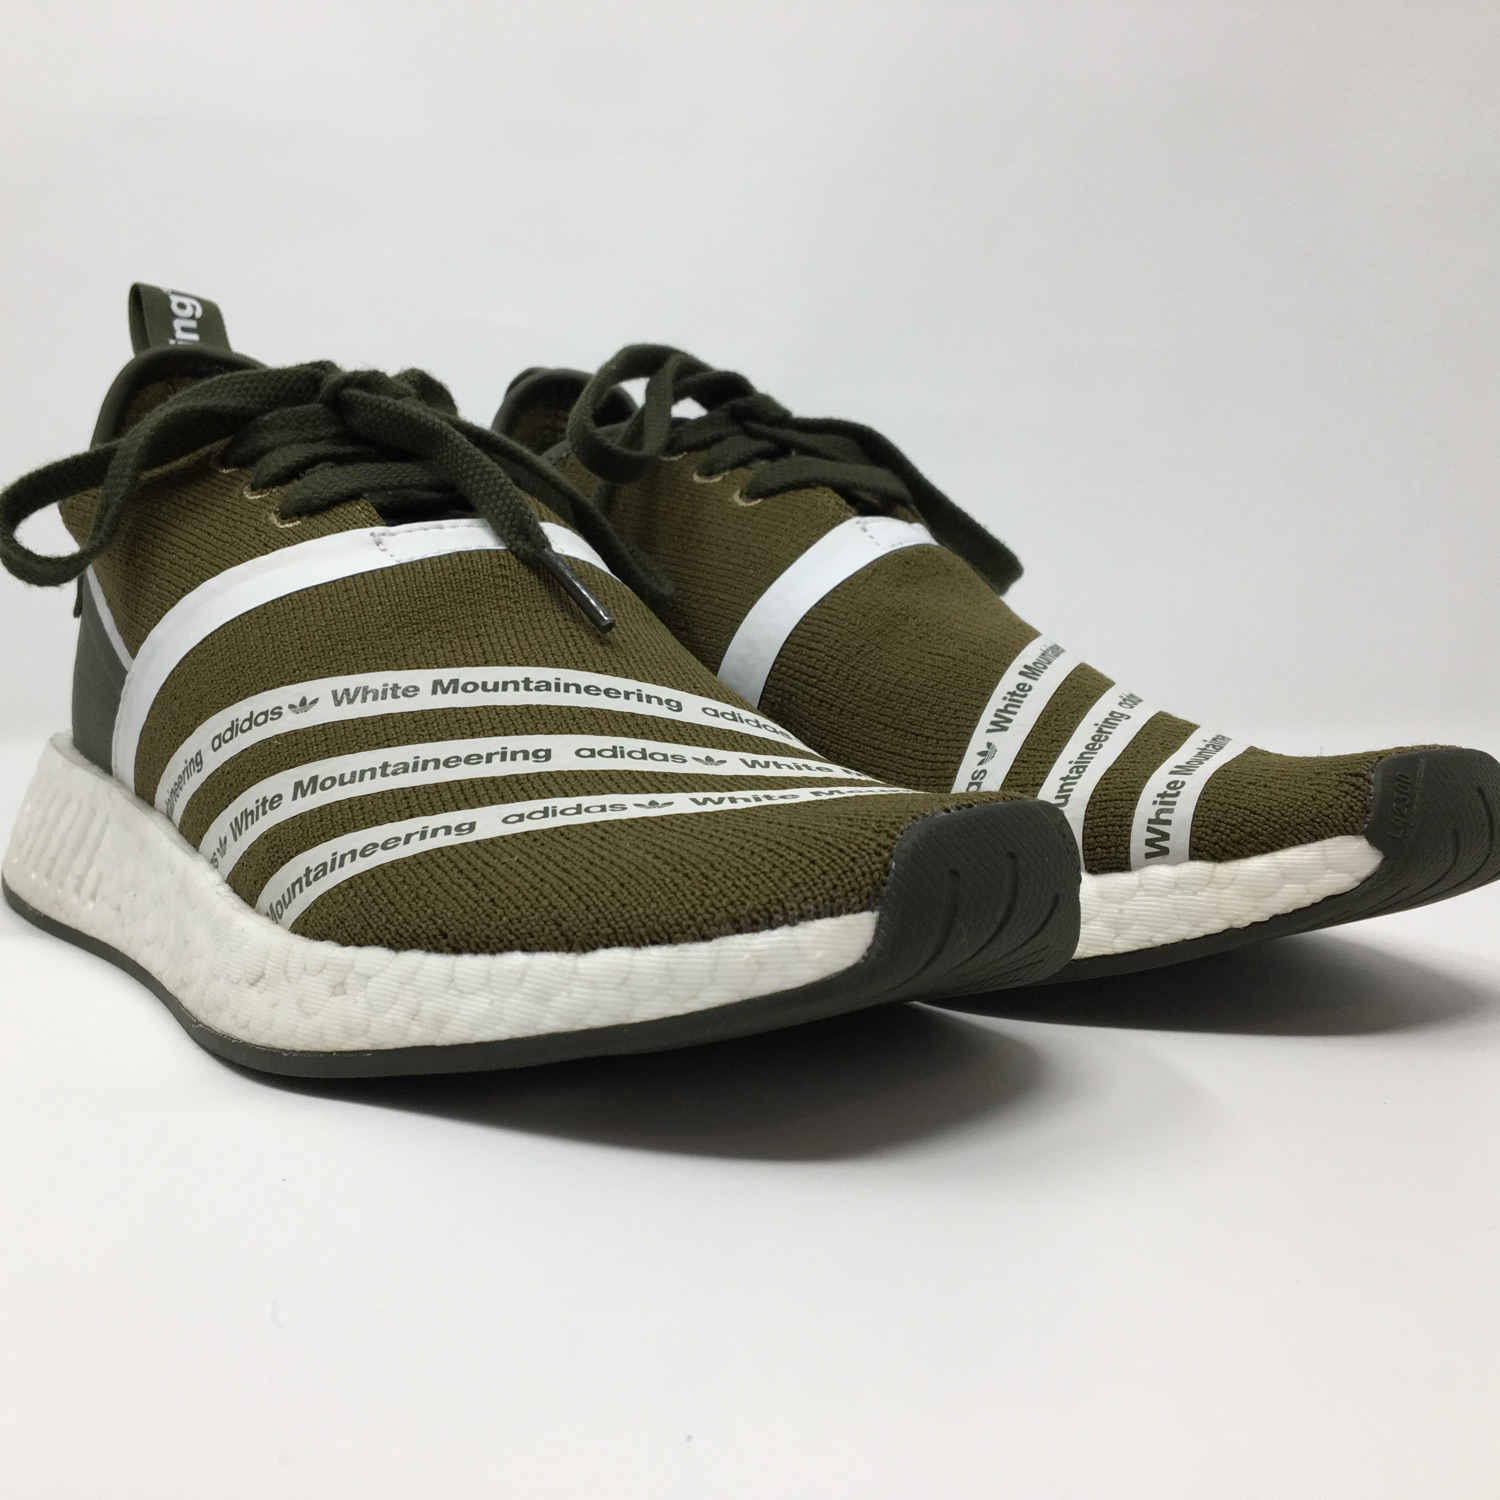 best sneakers 53a6d d5c28 Adidas X White Mountaineering Nmd R2